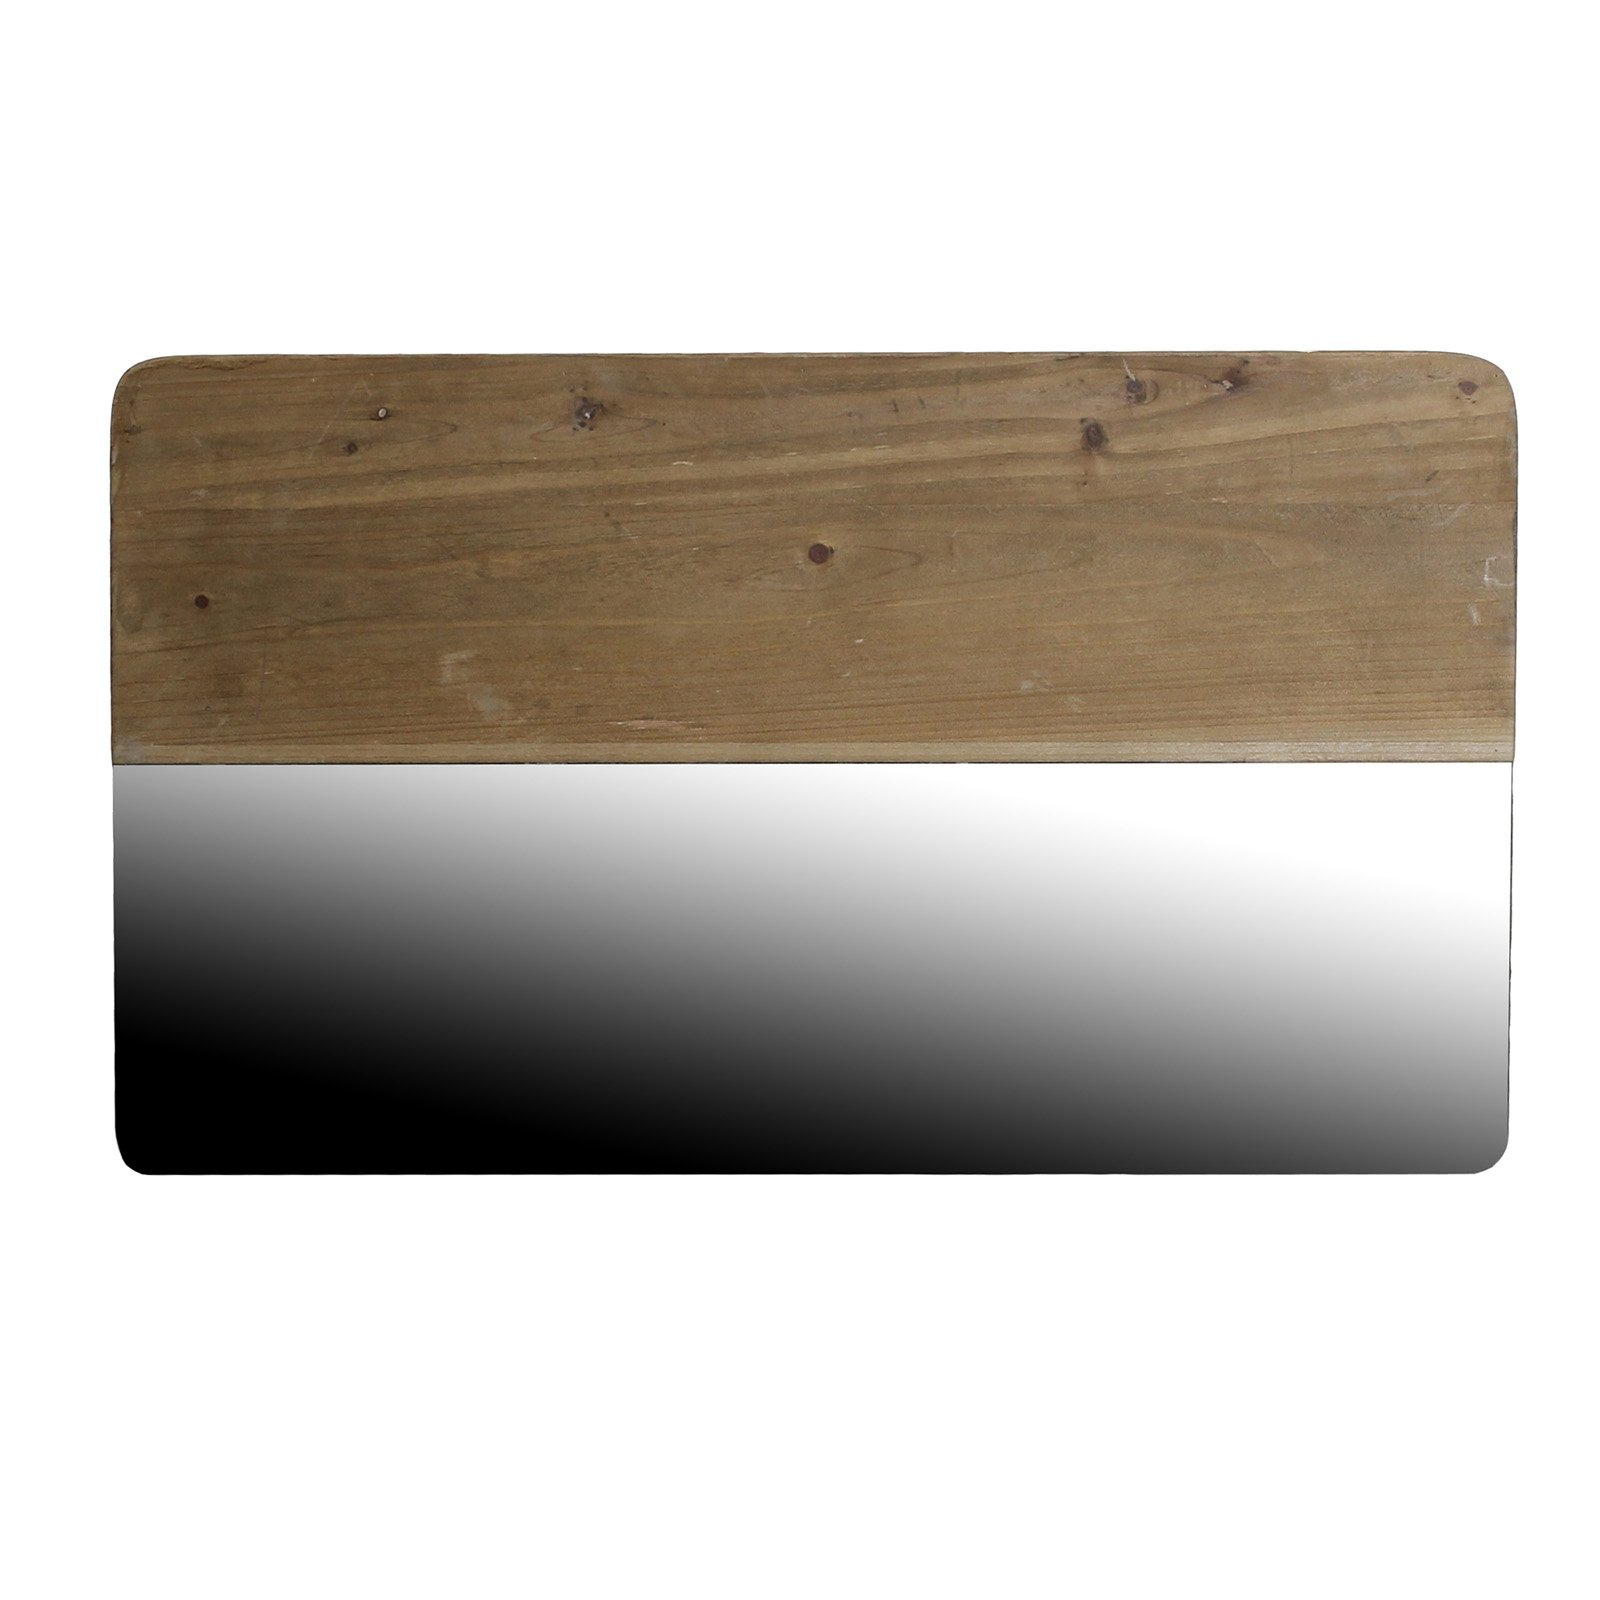 Fashionable Areo Home Areo Home Owen Rectangle Mirror Wall Accent Intended For Owens Accent Mirrors (View 5 of 20)